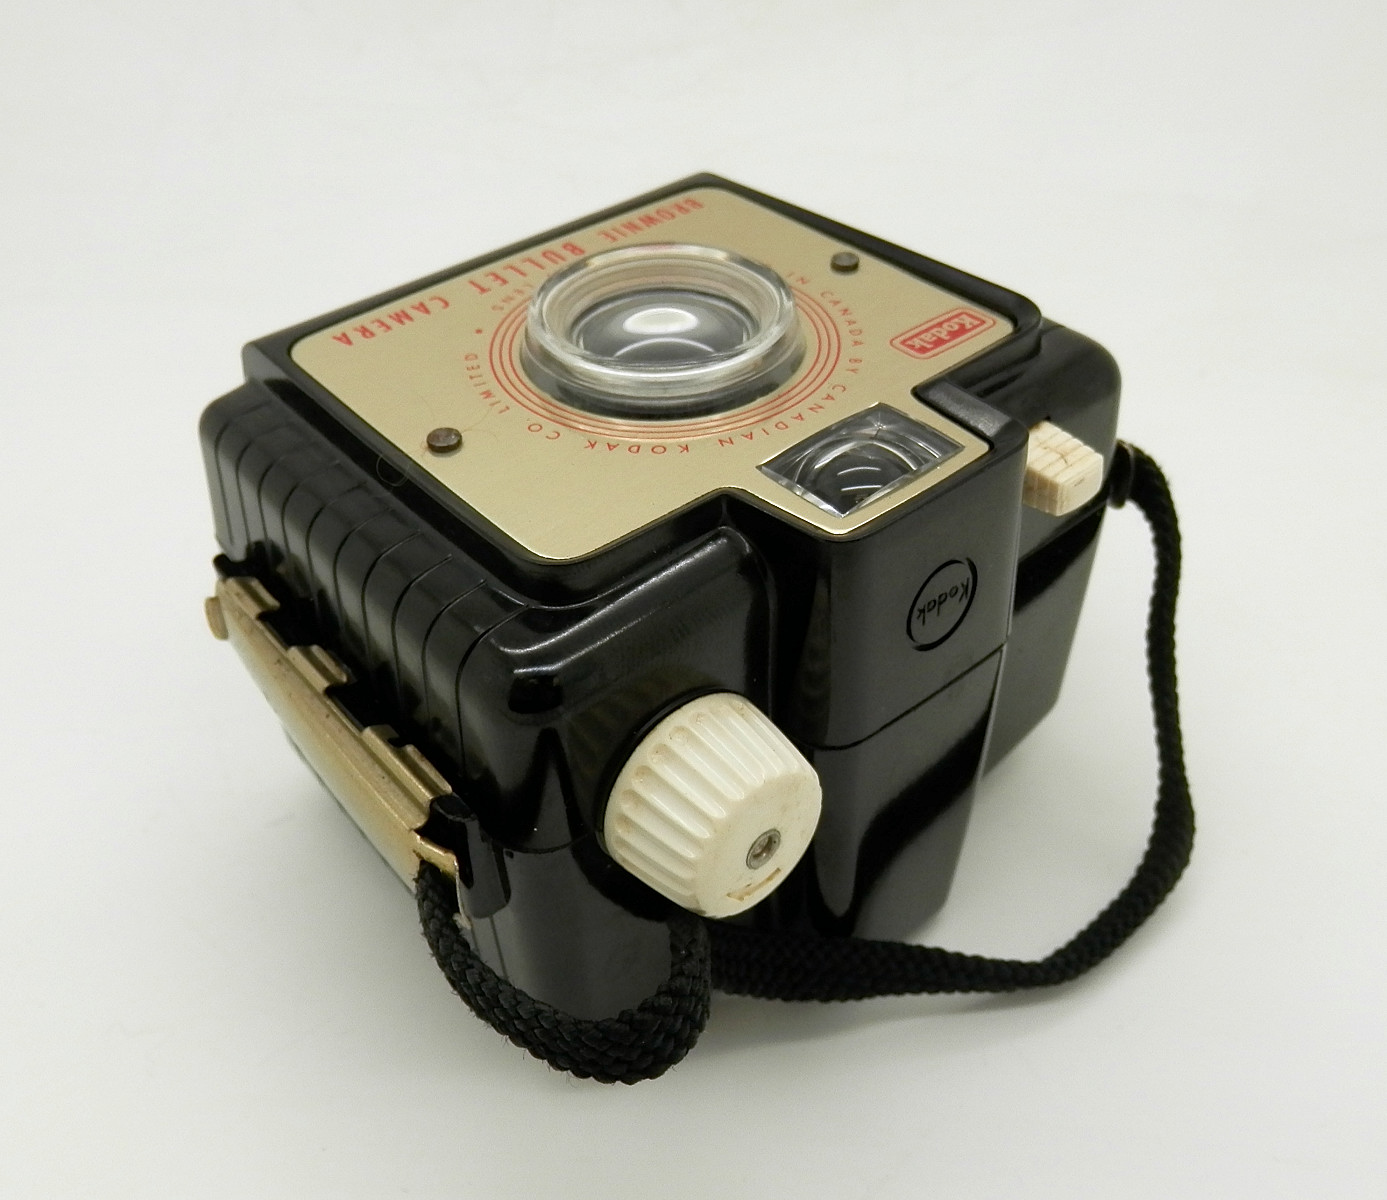 Rolleiflex 2.8E Mint & Cased #6434 - Click Image to Close